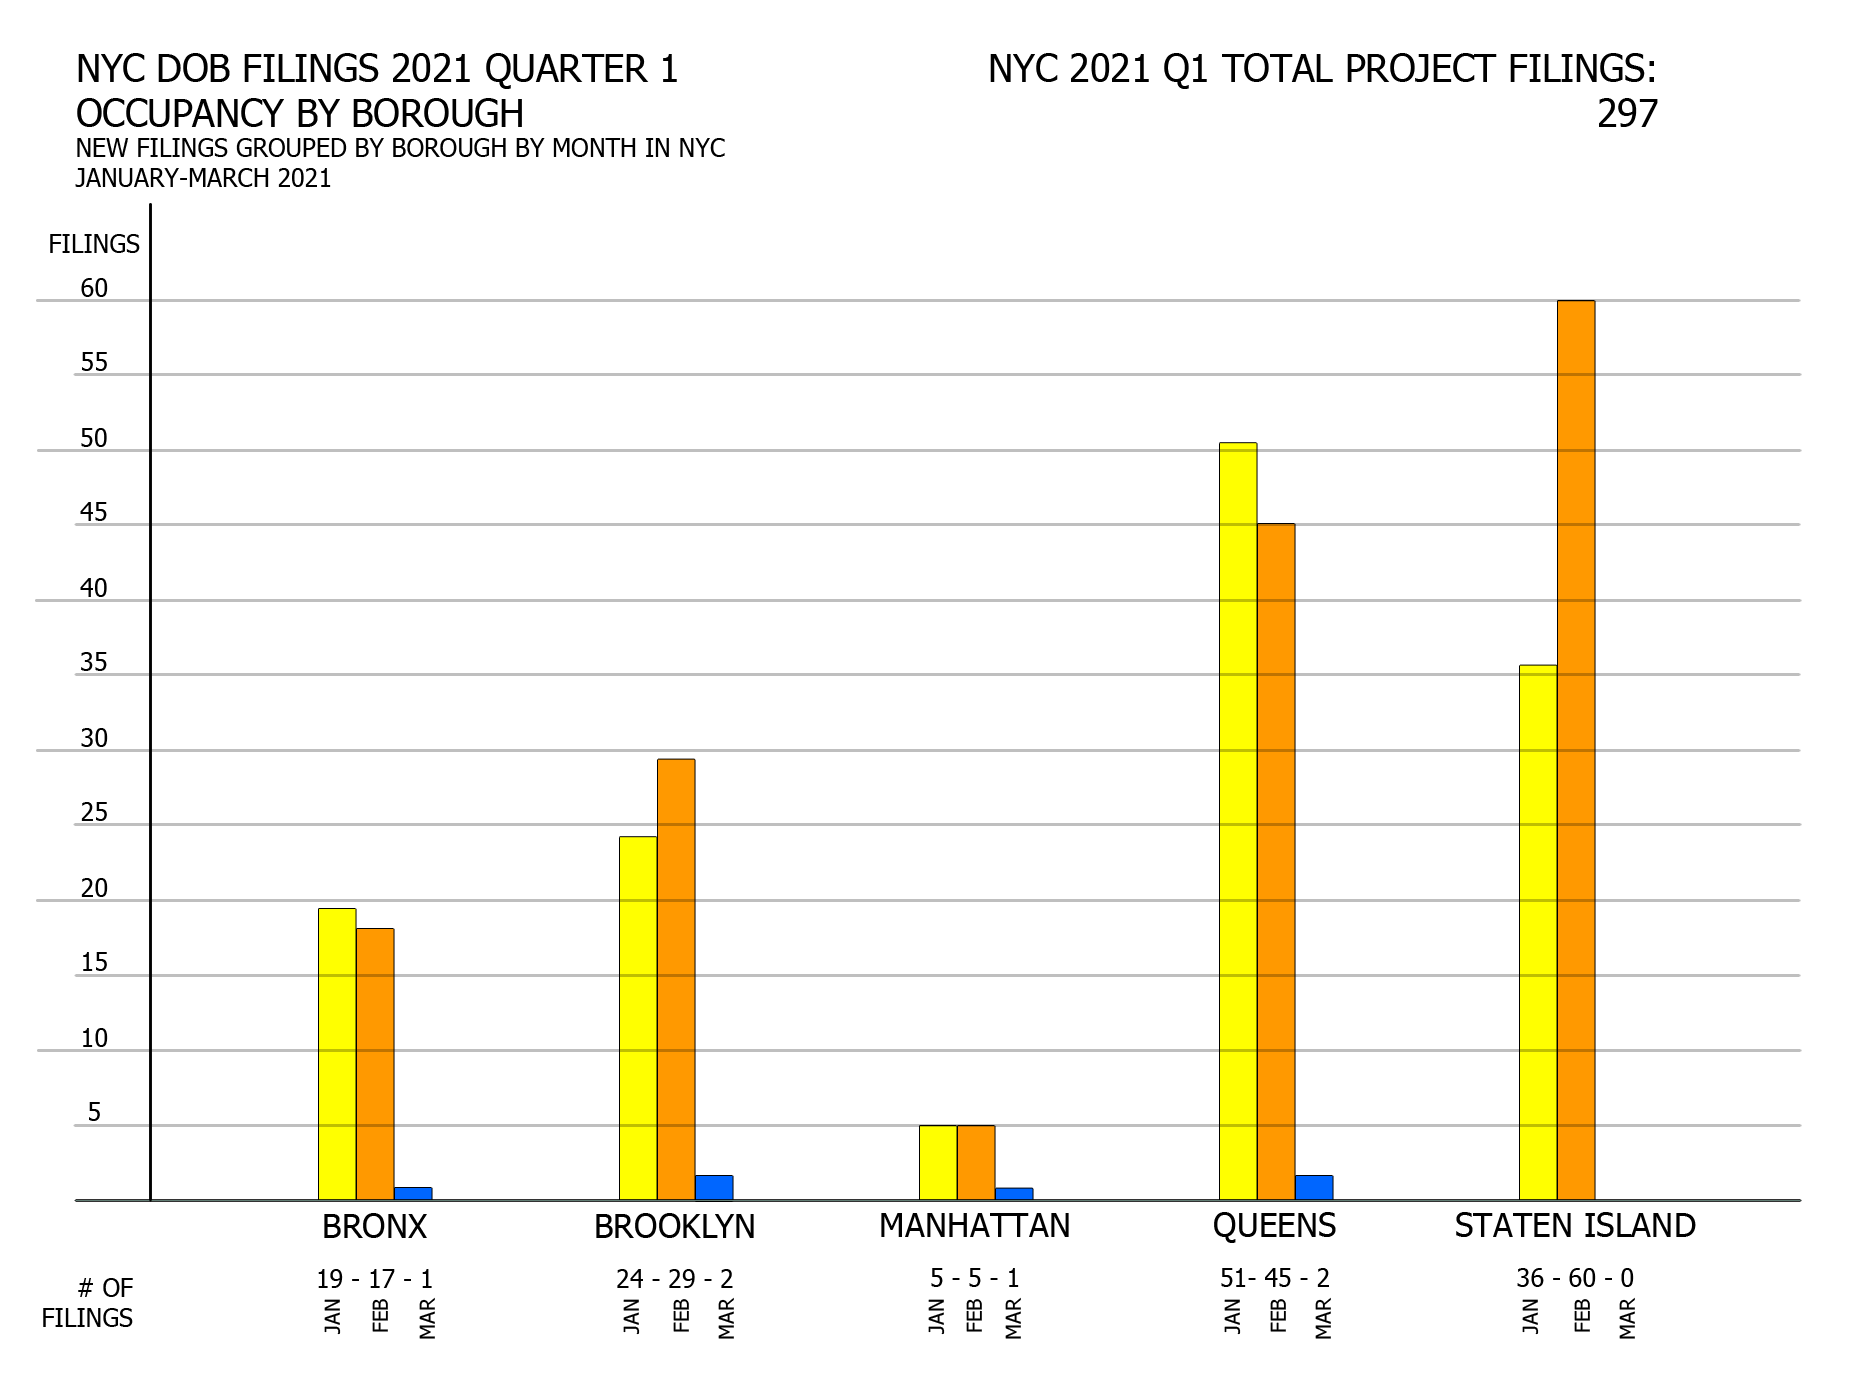 NYC DOB filings in first quarter of 2021 by the number of filings per month per borough. Credit: Vitali Ogorodnikov